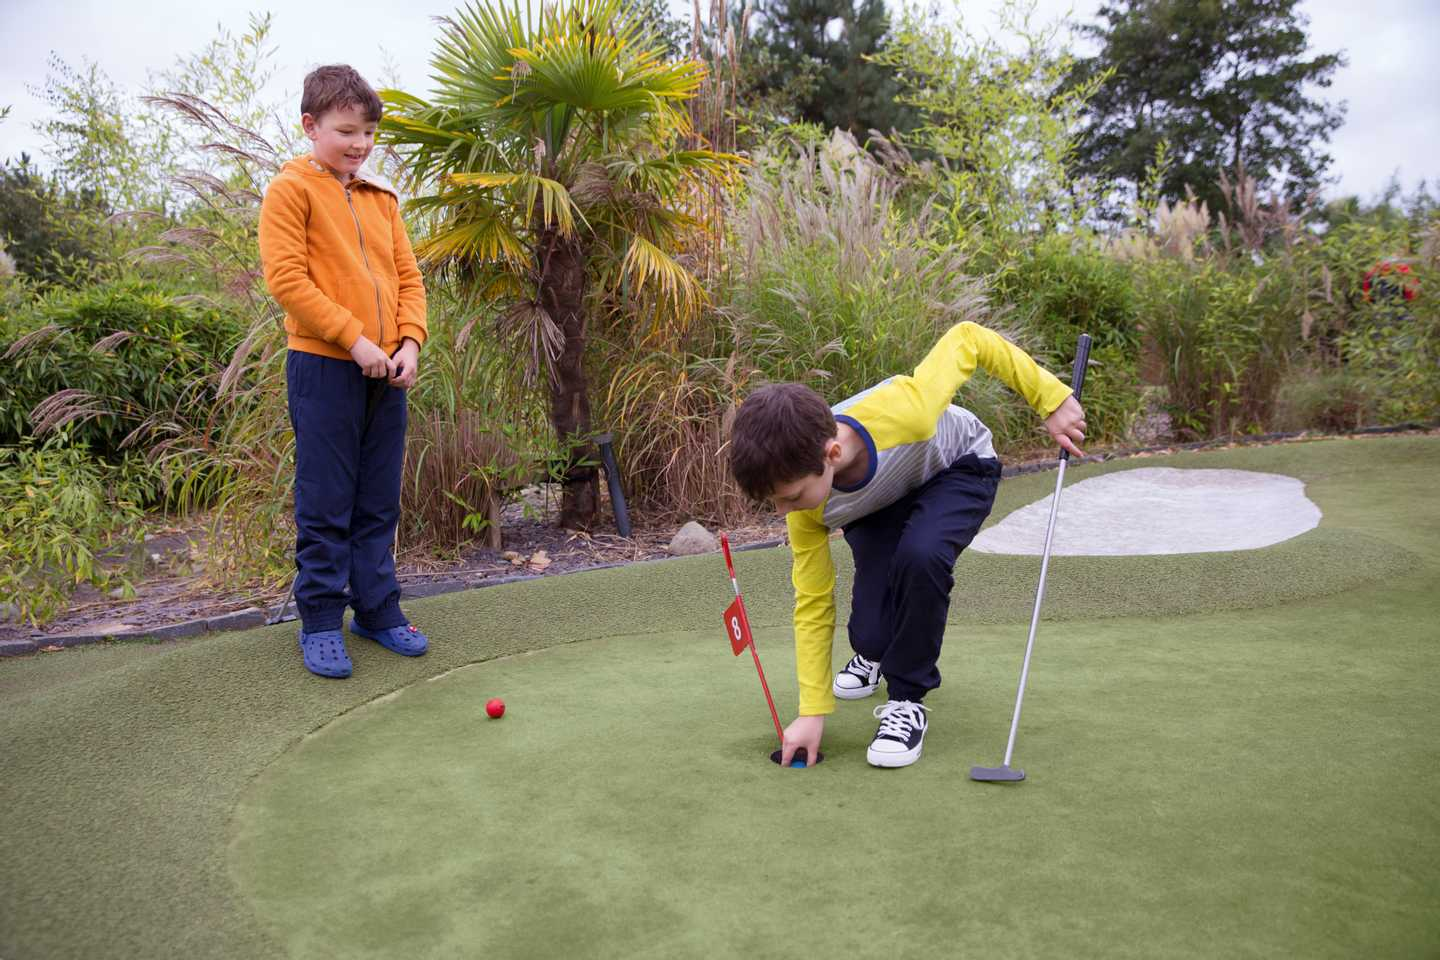 Playing on the Adventure Golf course